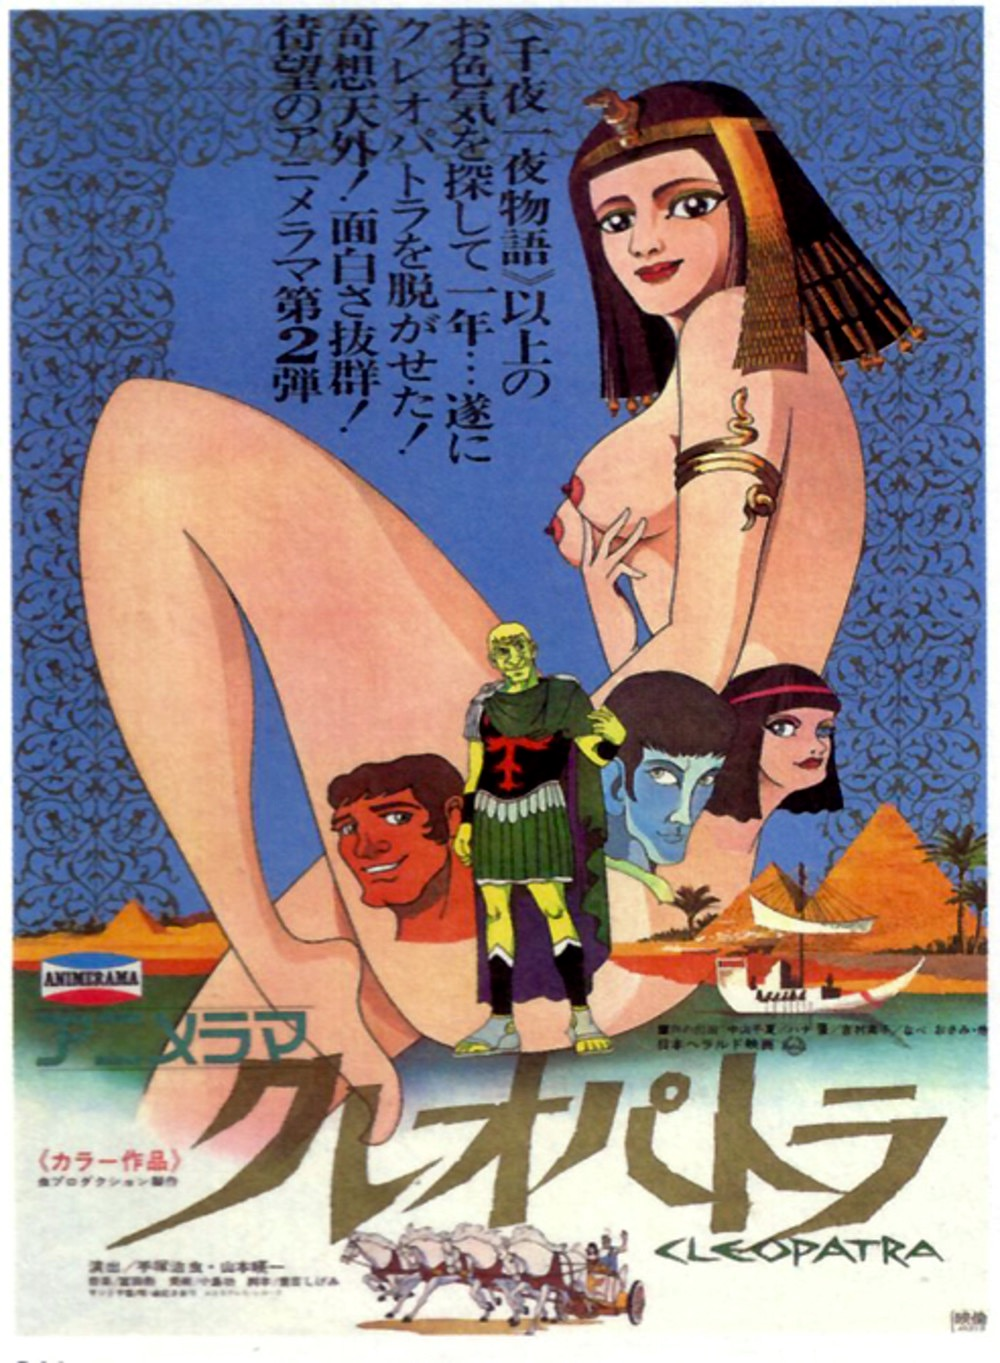 Cleopatra queen of sex poster nsfw.jpg